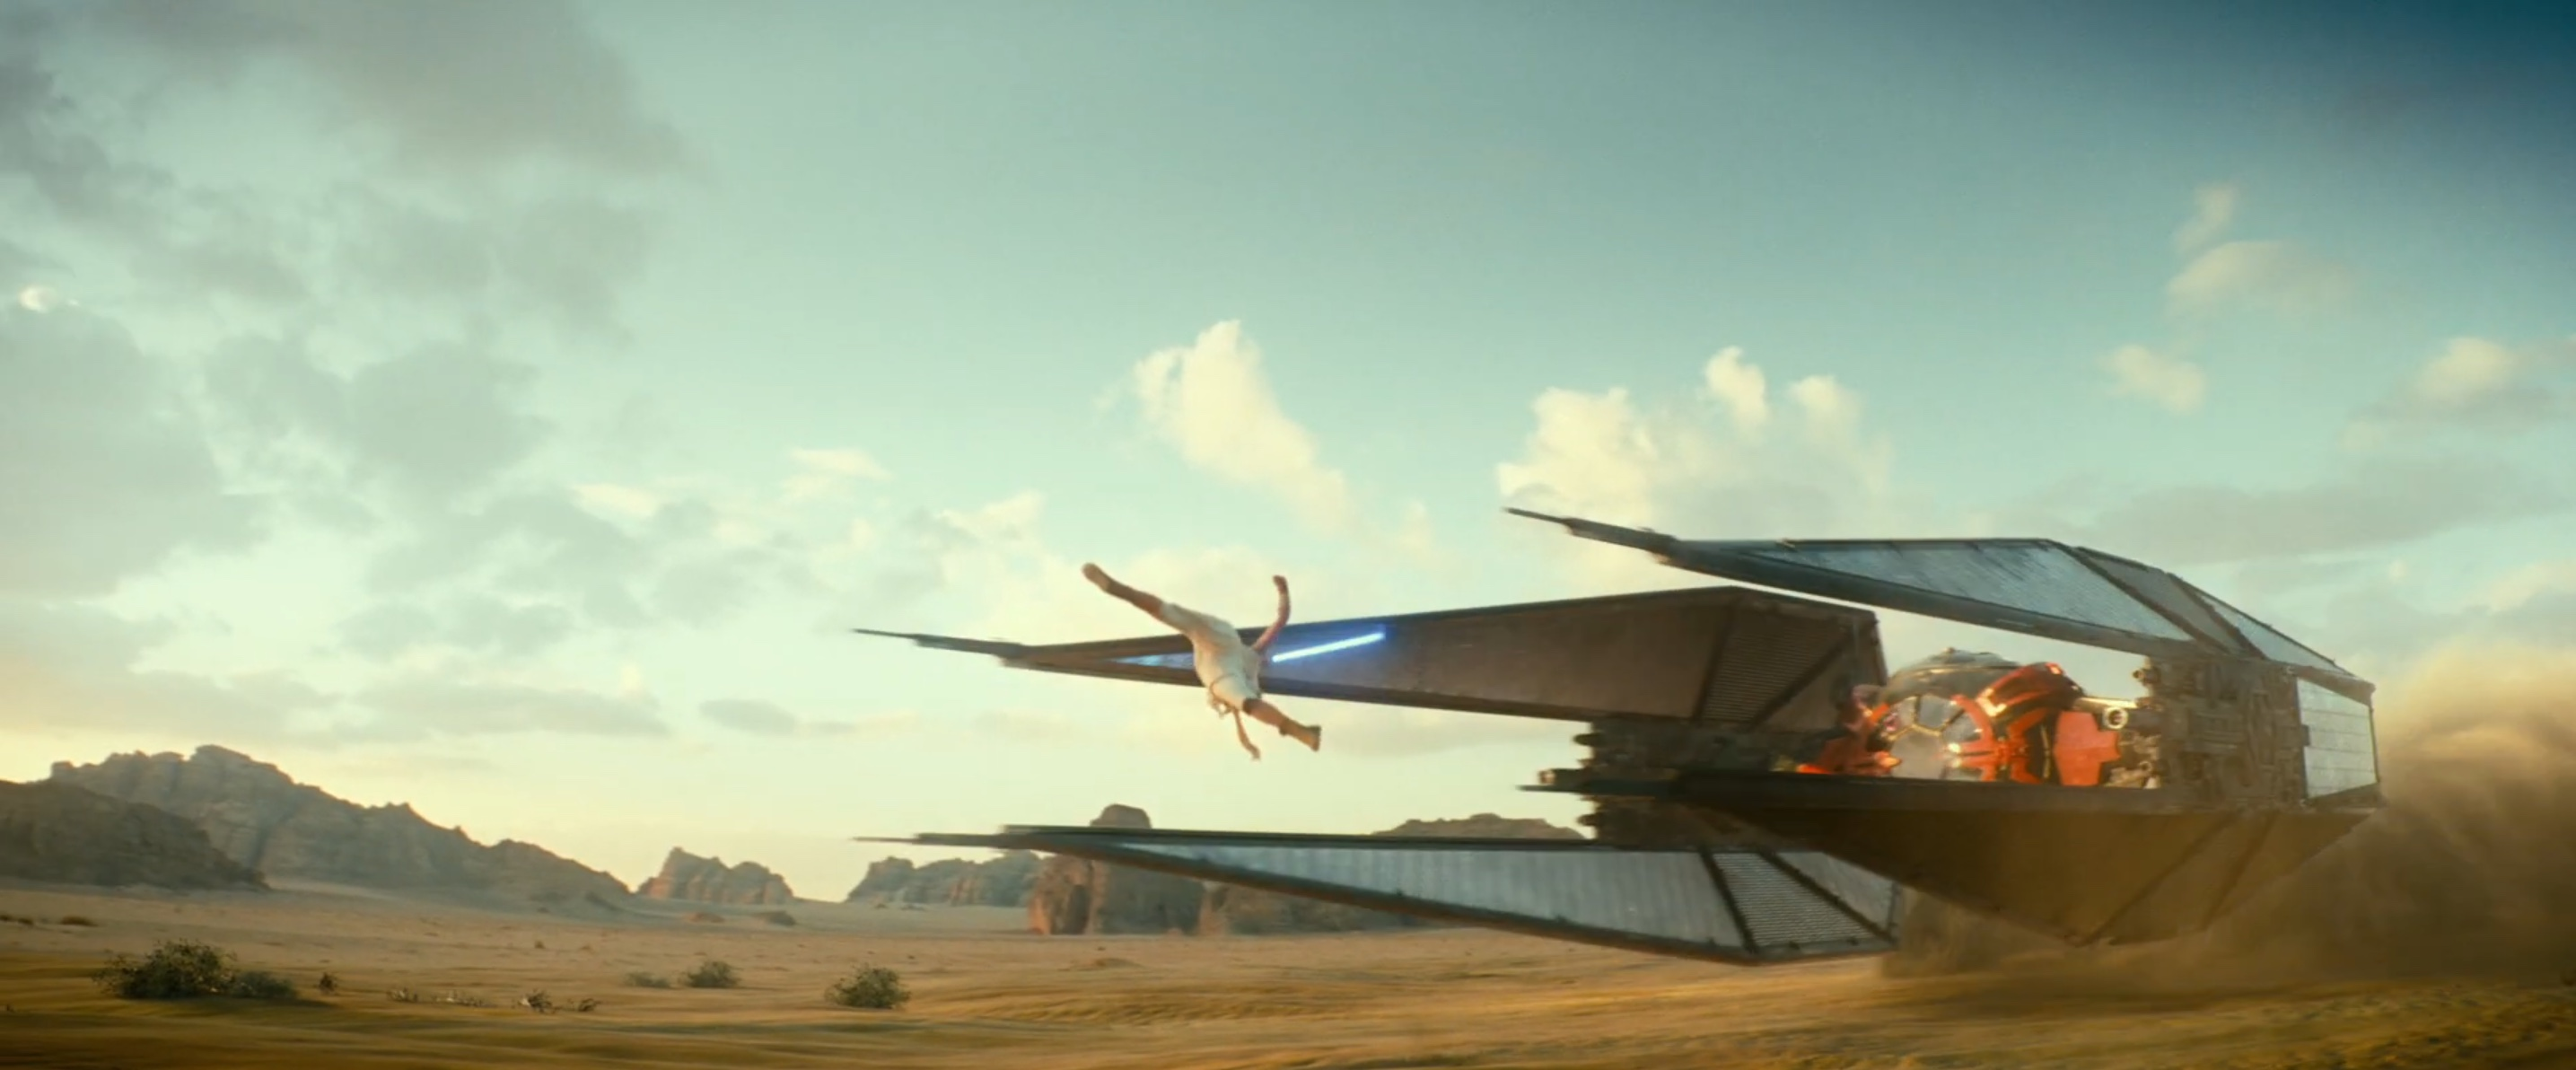 Star Wars: The Rise of Skywalker - Un'immagine dal primo teaser